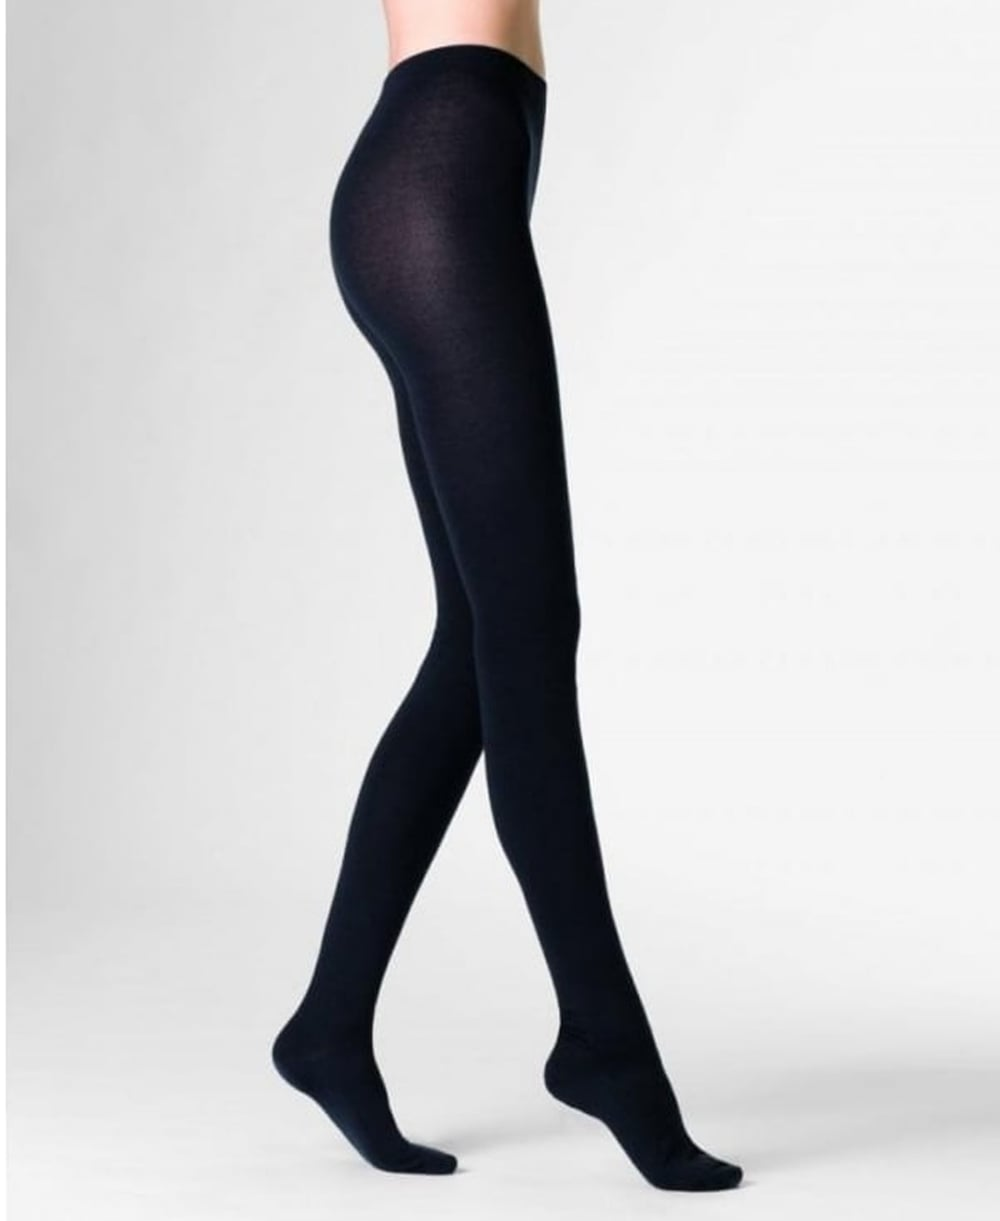 c95ba511e Fogal Cashmere   Silk Tights - Tights from luxury-legs.com UK